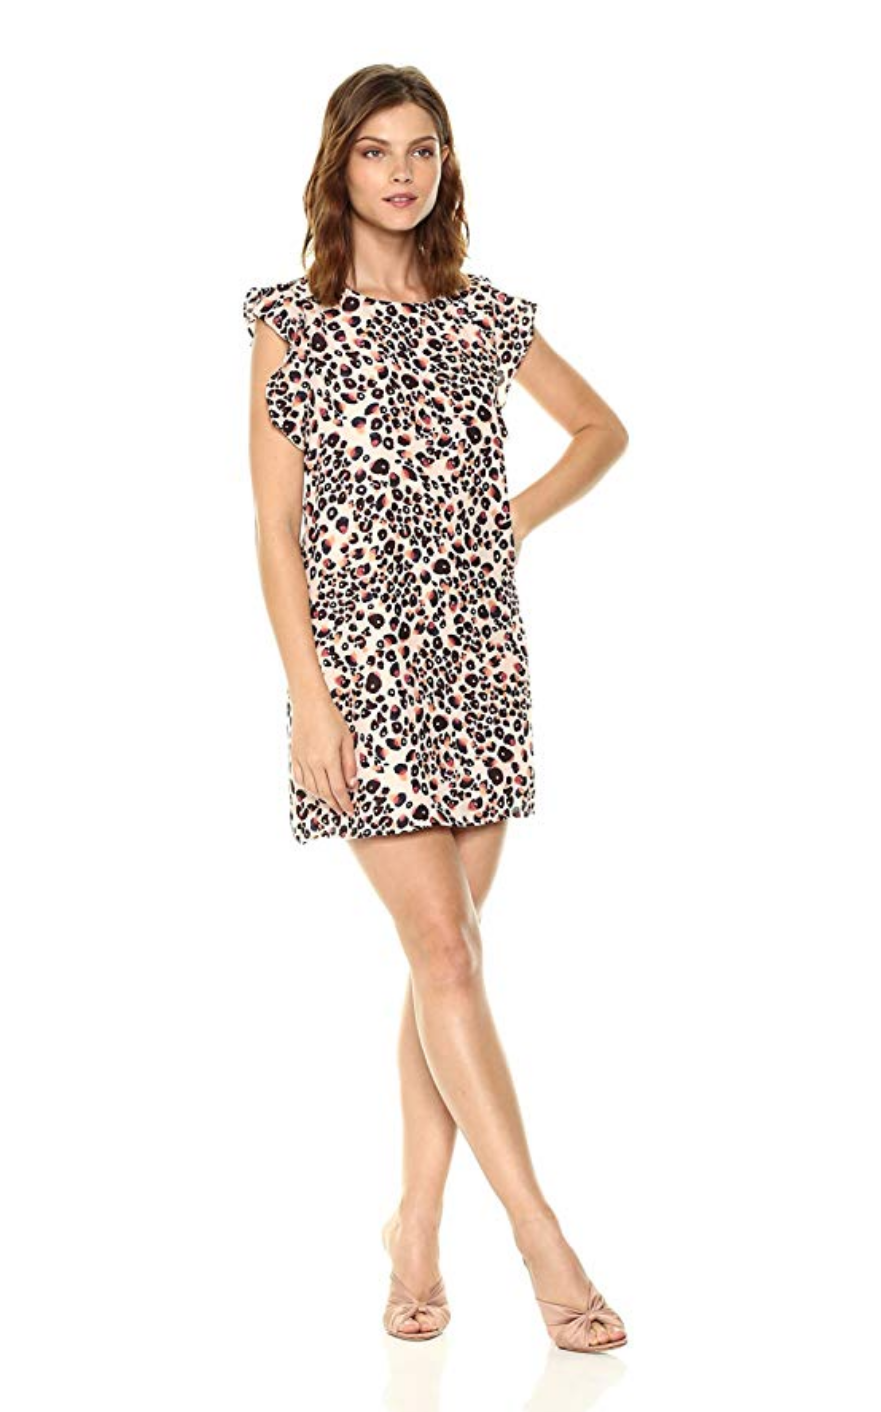 cupcakes and cashmere leopard print dress - shop here